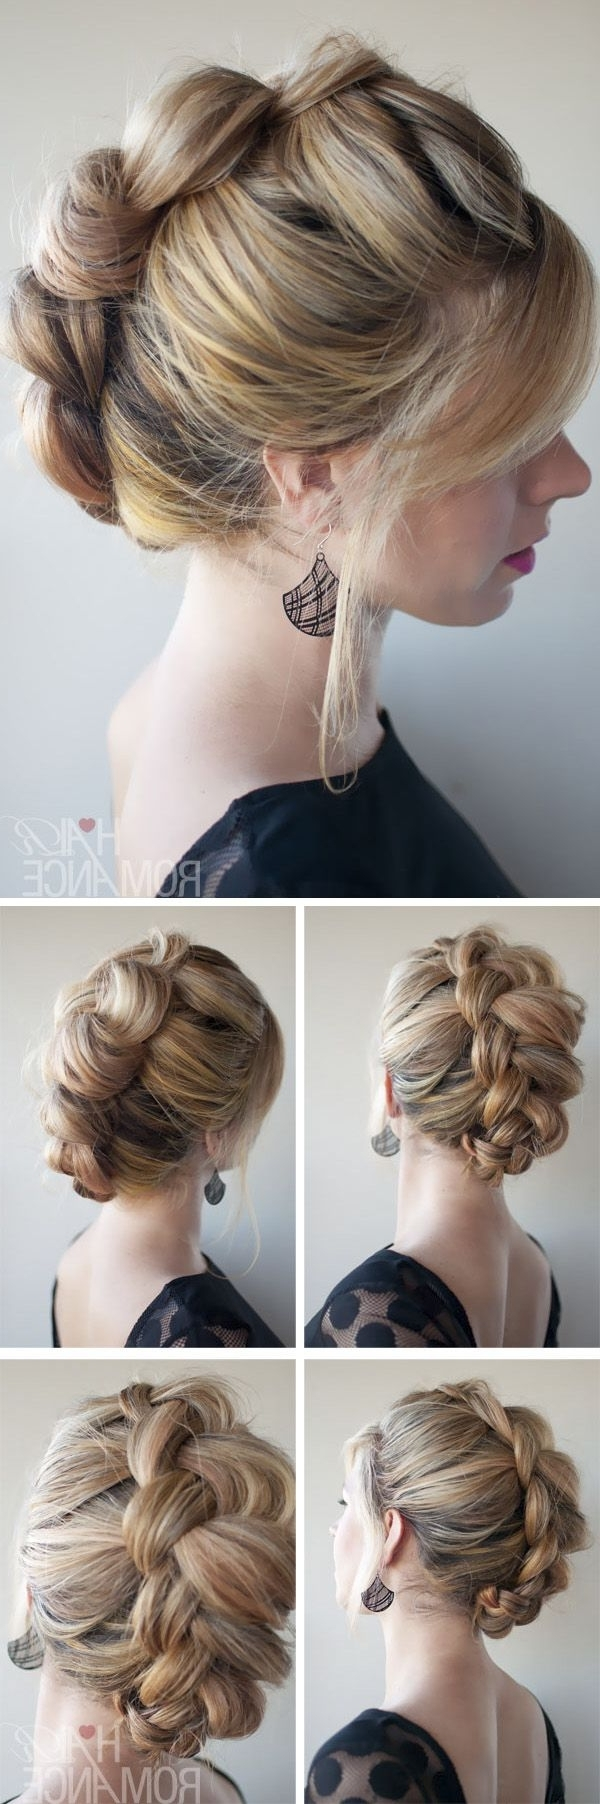 9 Easy And Chic Hairstyle Tutorials With Braids | Chic Hairstyles Regarding Chic Updos For Long Hair (Gallery 3 of 15)